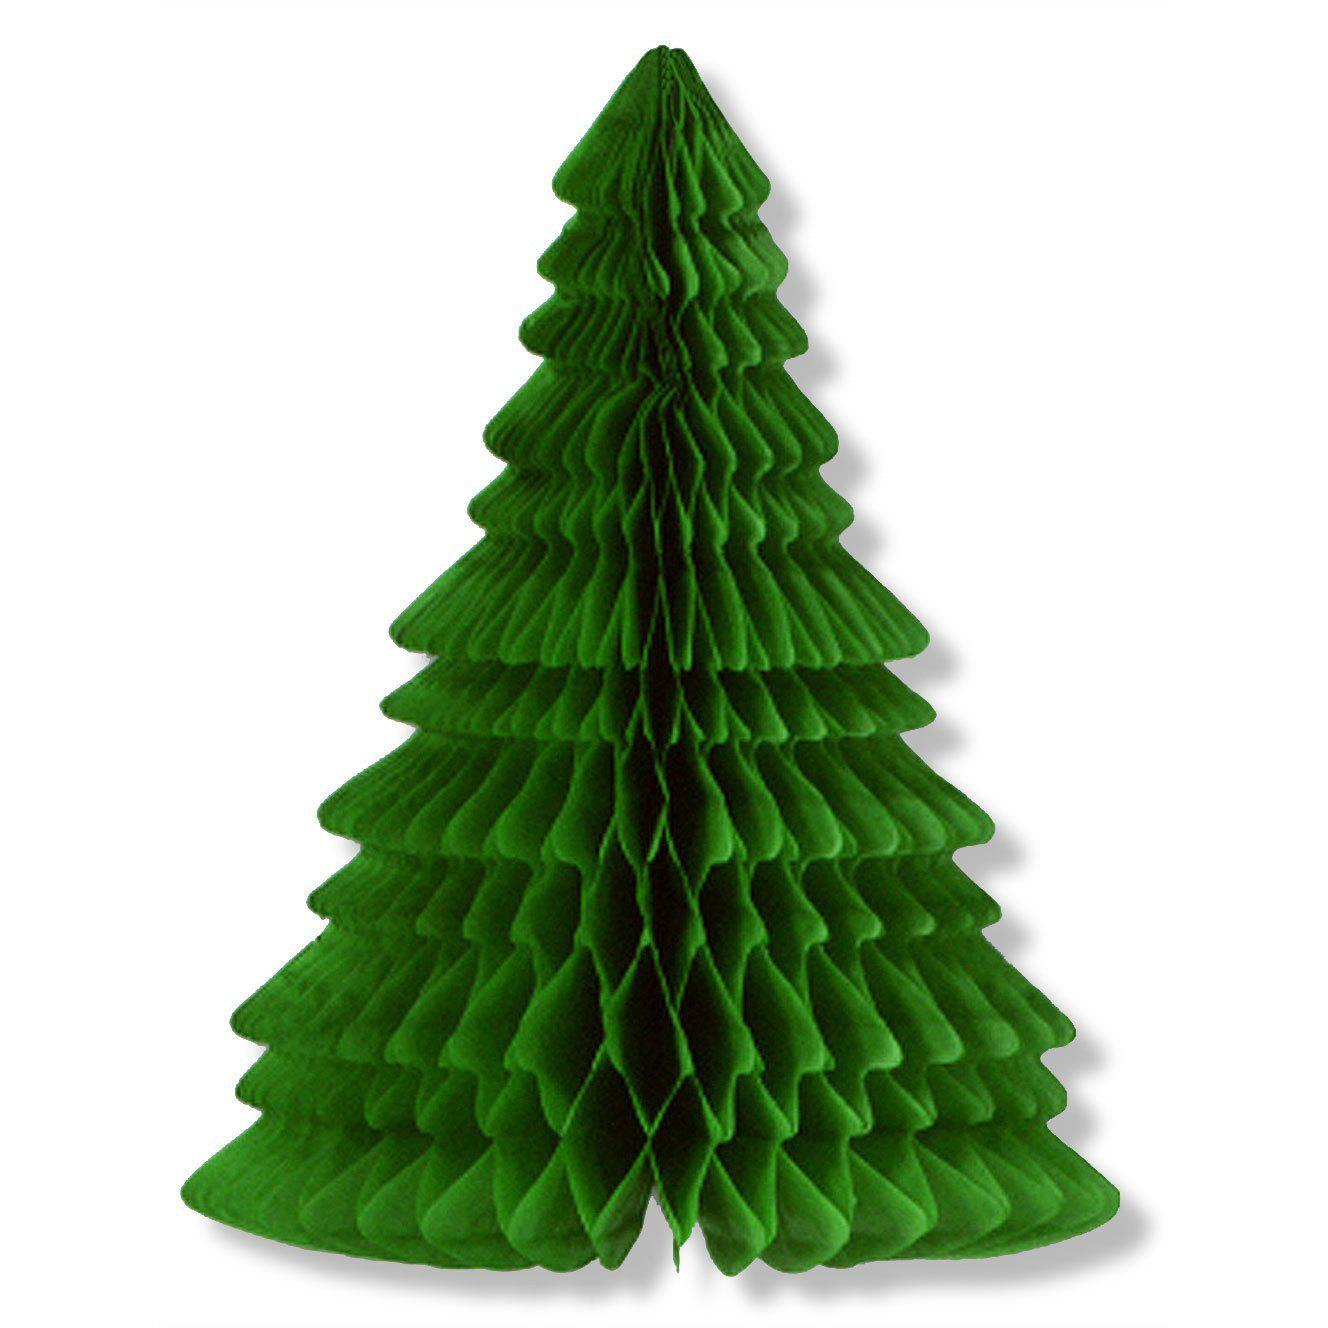 Honeycomb Christmas Tree Decorations Party Wedding Table Centerpiece 10 Inch - GREEN